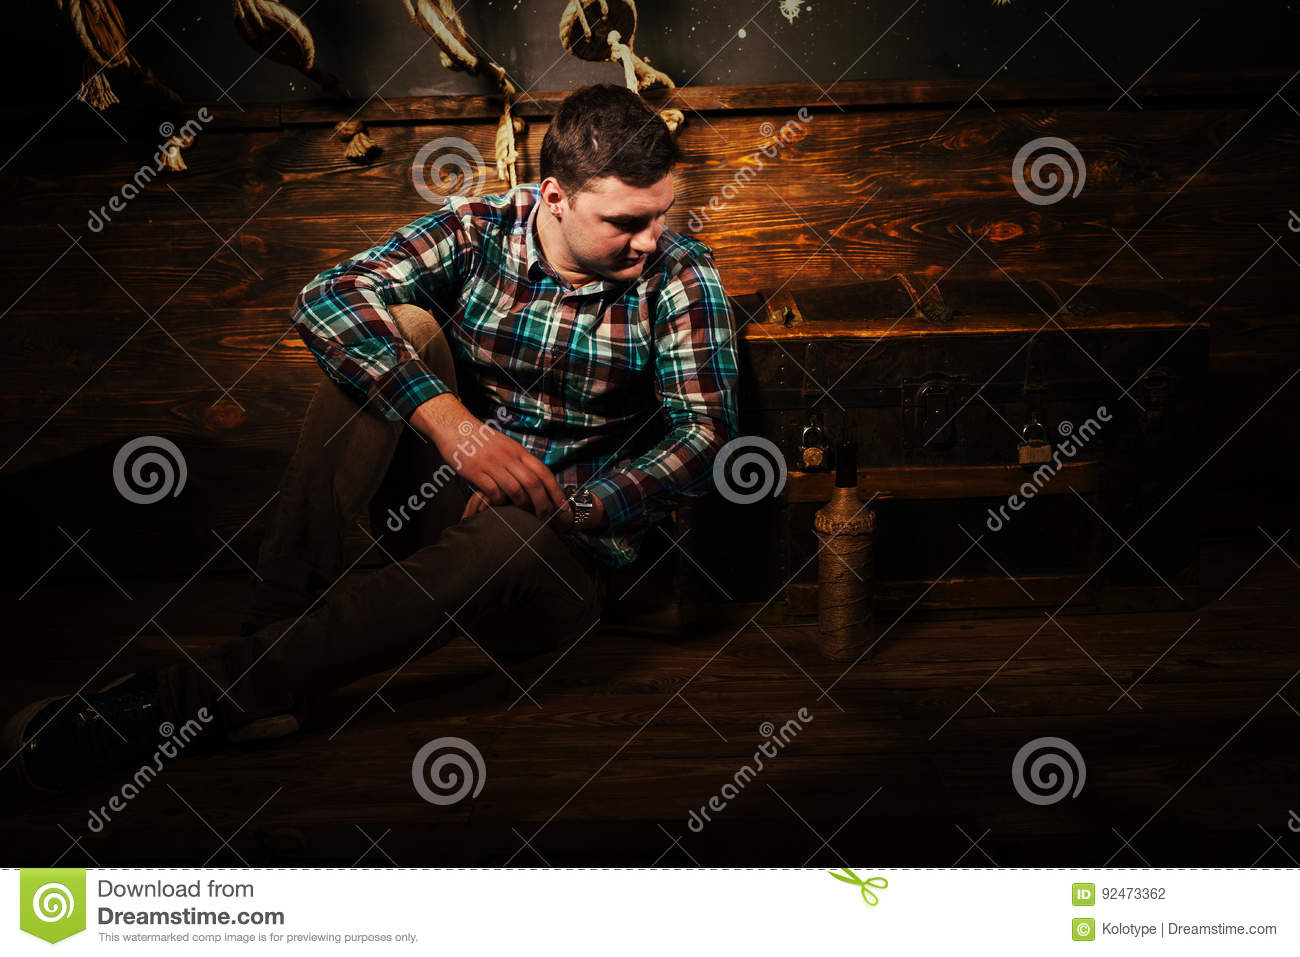 Disappointed man sits near a chest, holding glass bottle and try